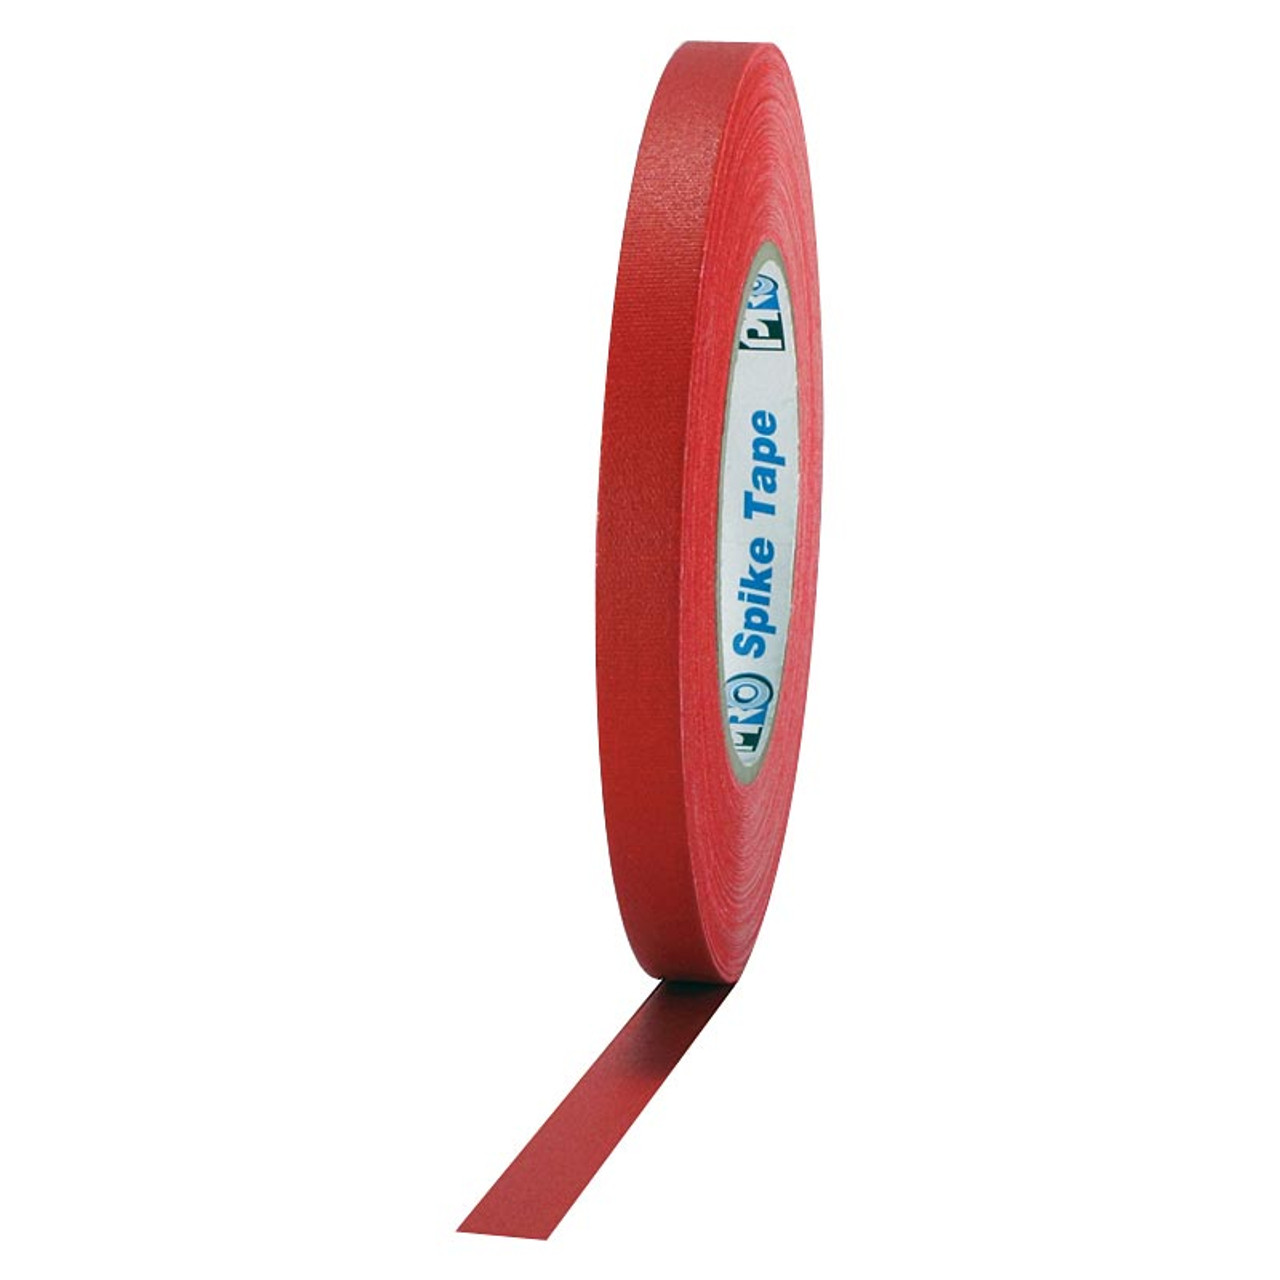 "Spike Tape - Red 1/2"" x 50 Yds"